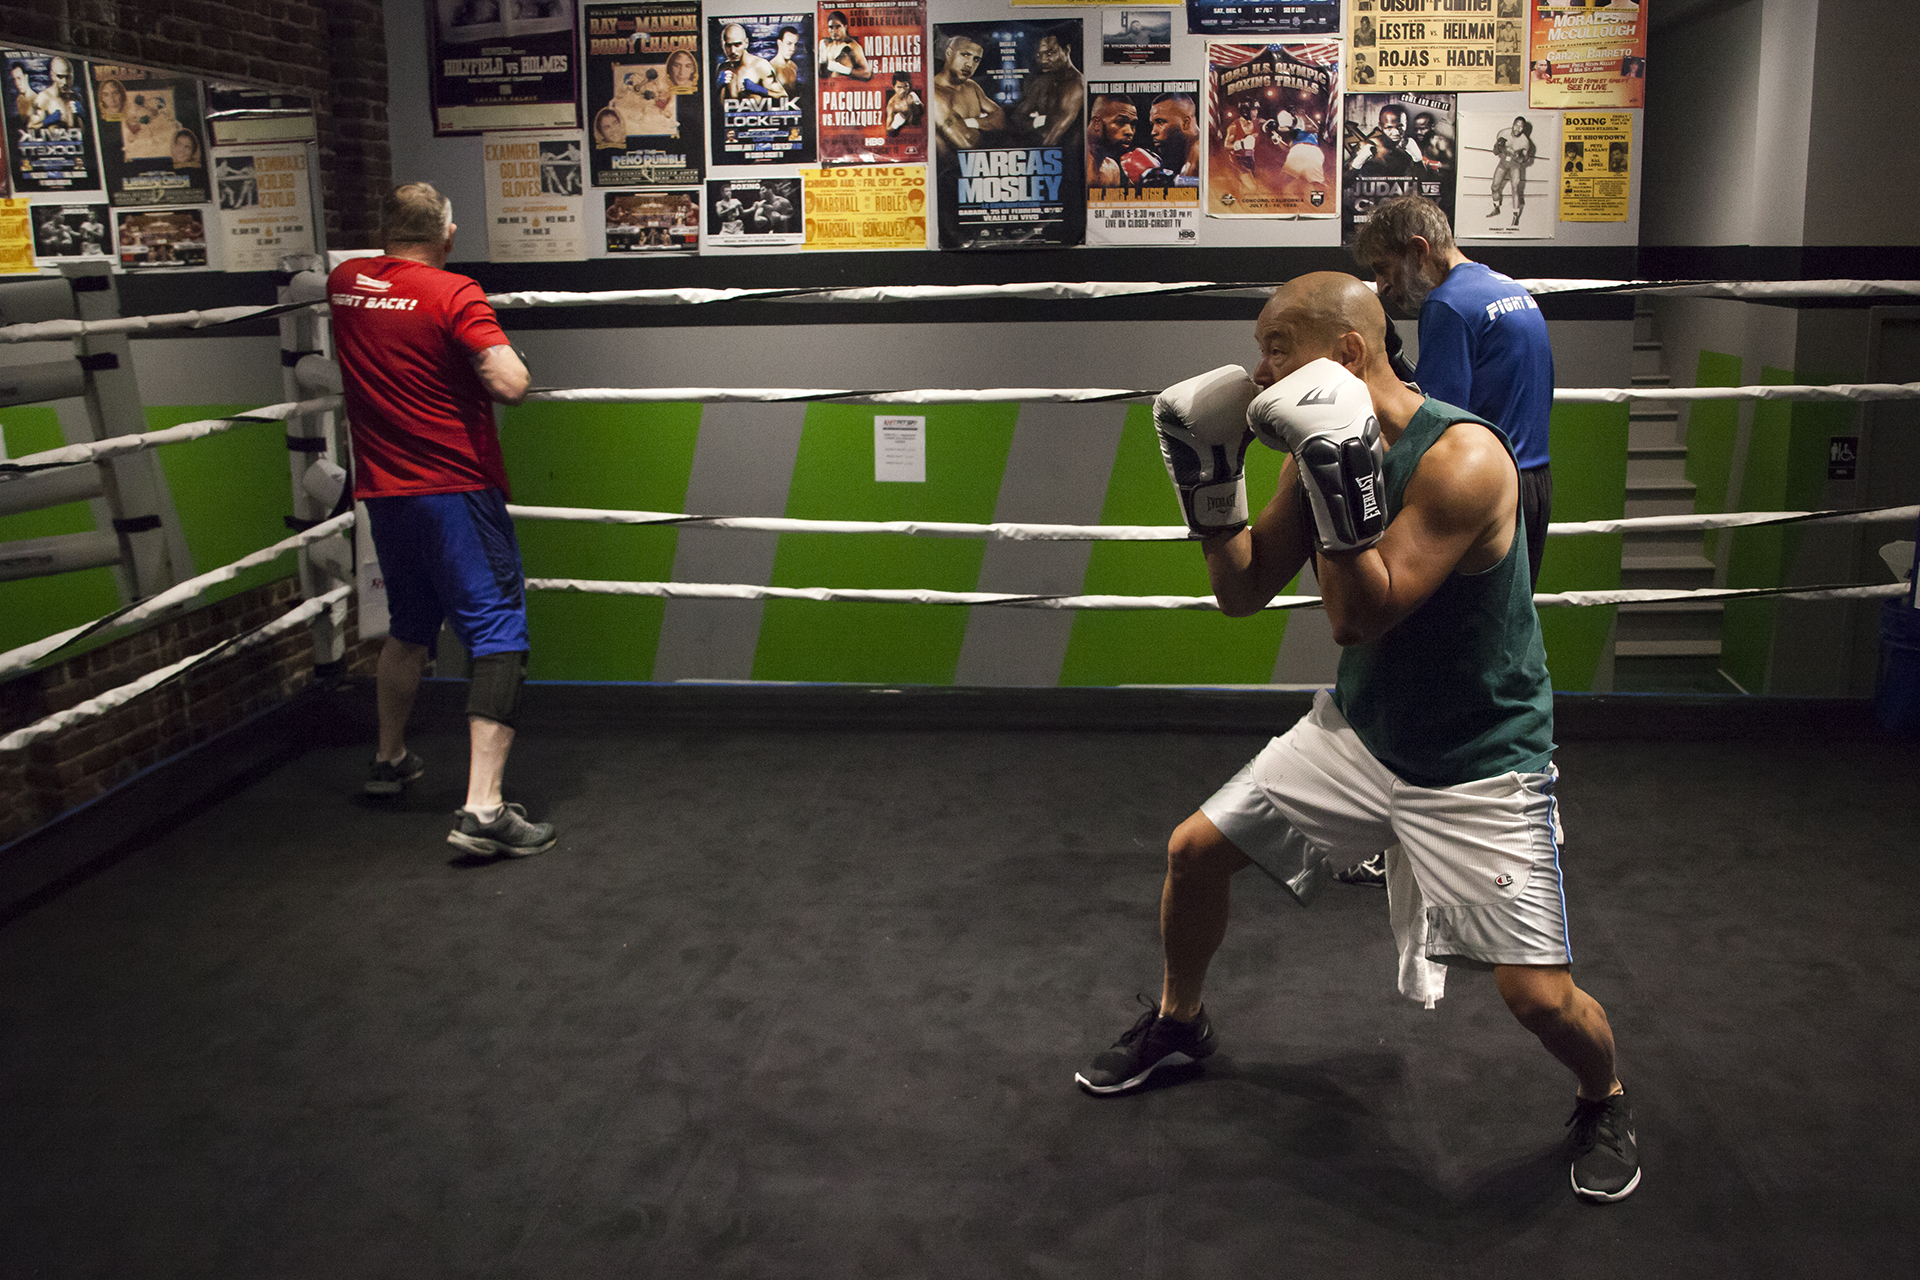 Kevin Kwok (center) practices shadow boxing during a Rock Steady Boxing class at HitFit SF in San Francisco, California.